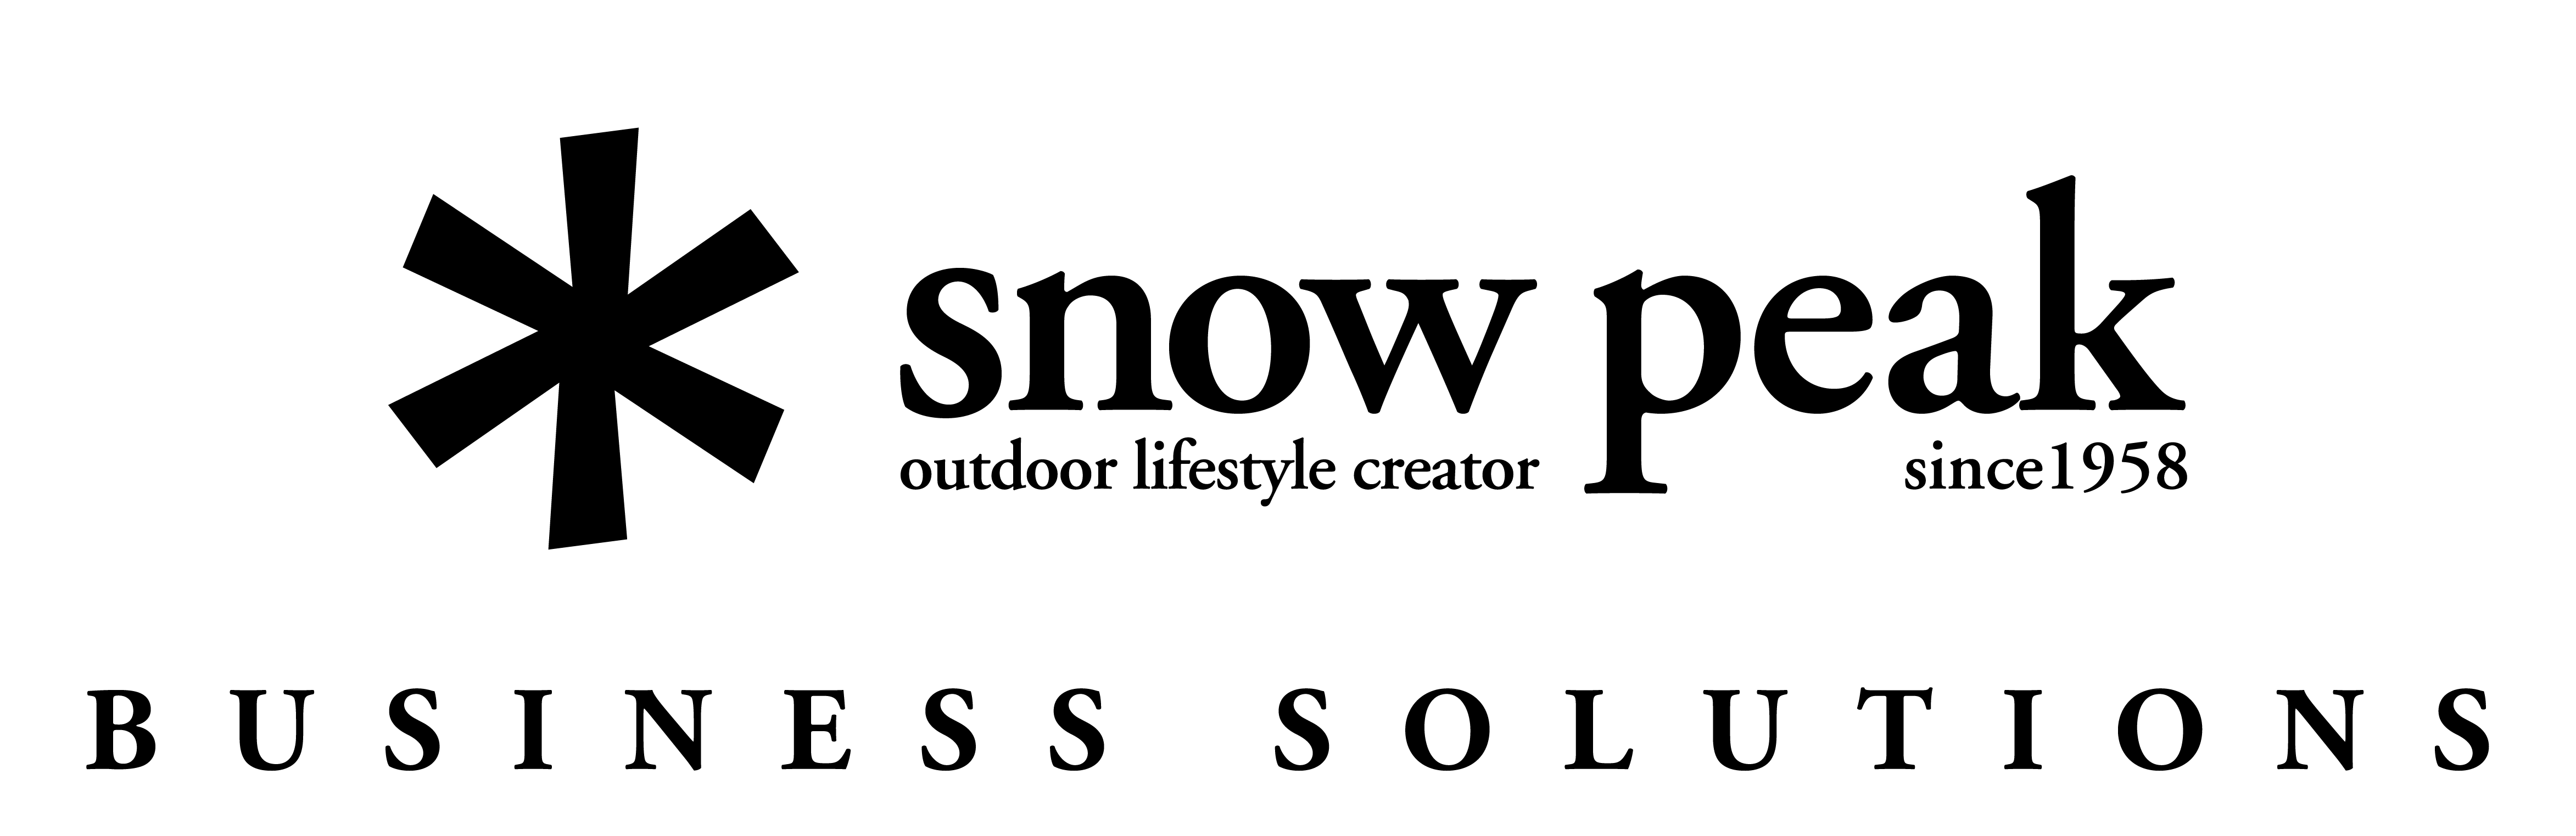 人からITを考える snow peak BUSINESS SOLUTIONS